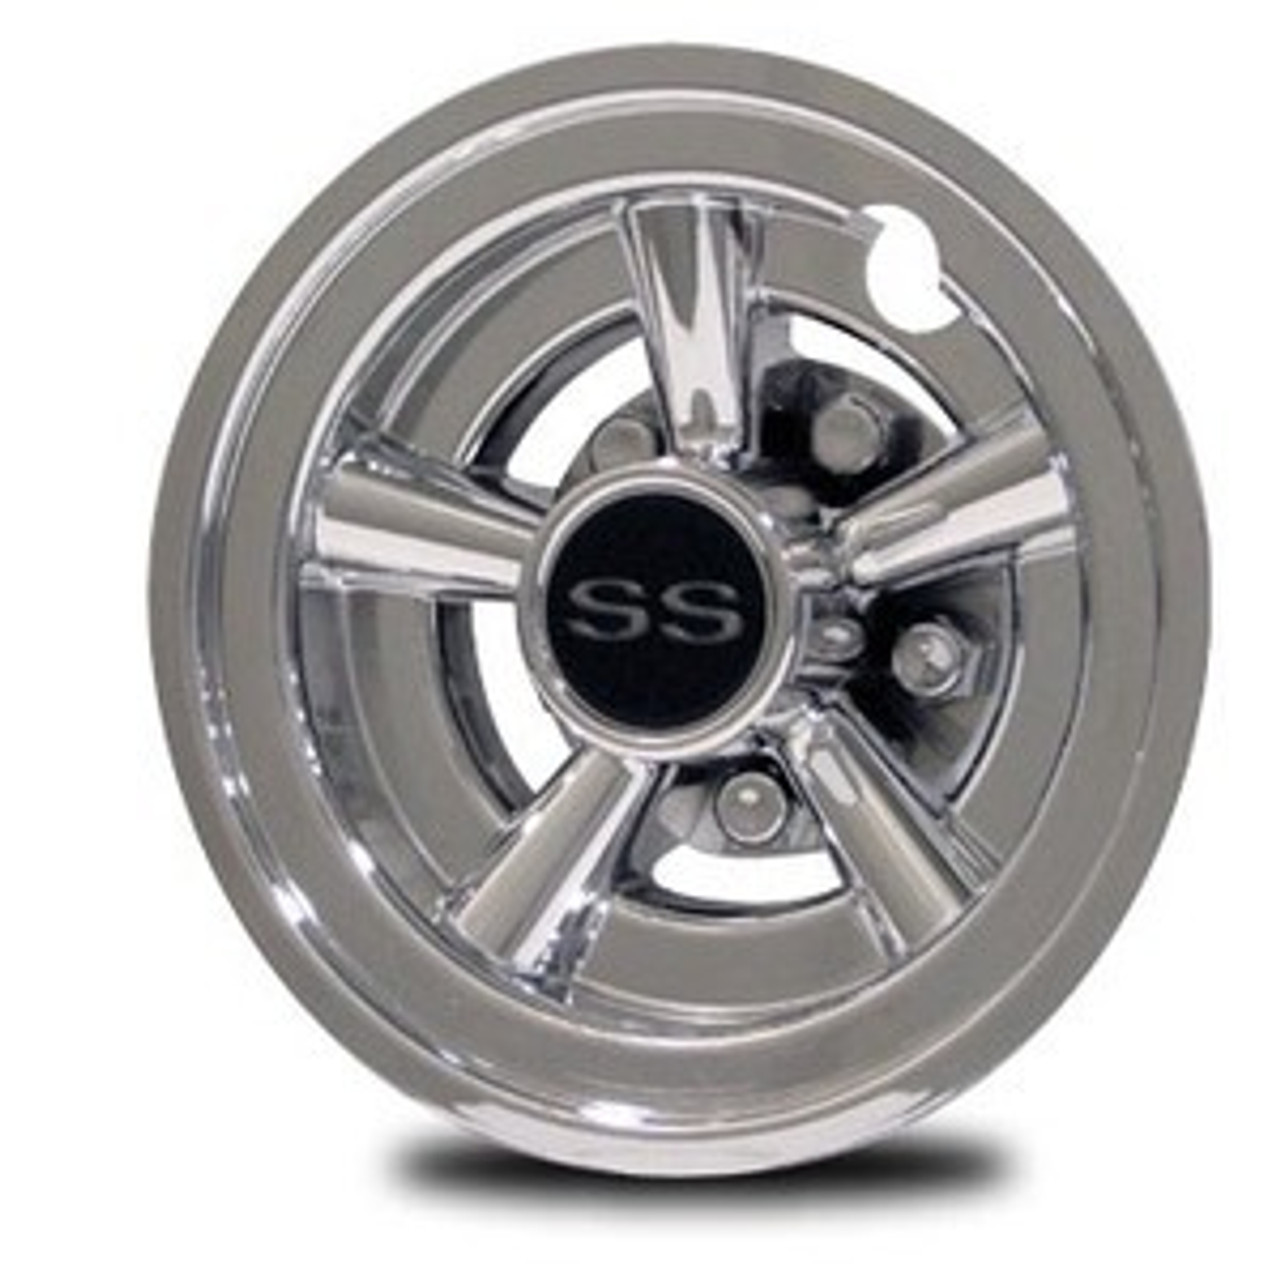 Wheel Covers & Hubcaps